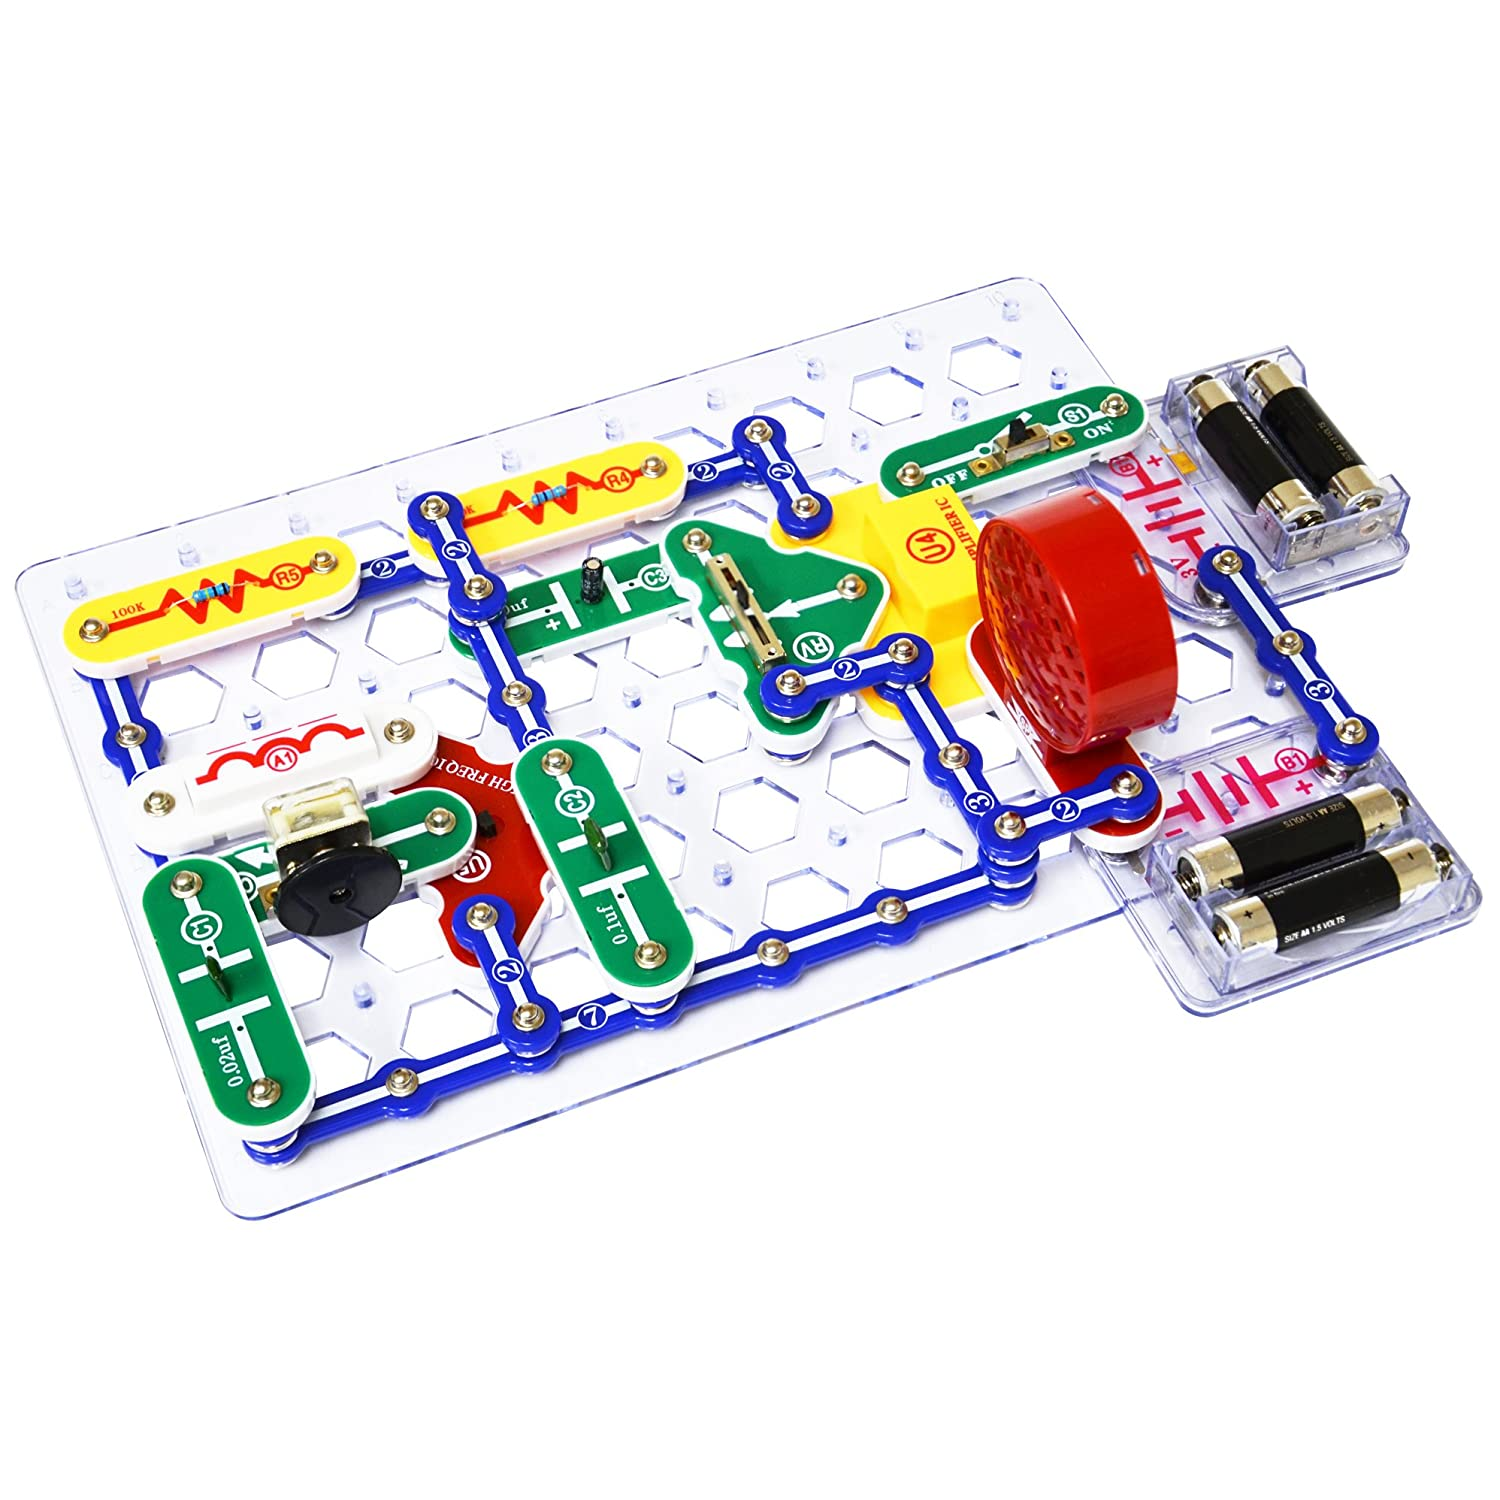 Snap Circuits Sc 300 Electronics Discovery Kit Kits Basic Toys For Kids Jr 100 Amazon Canada